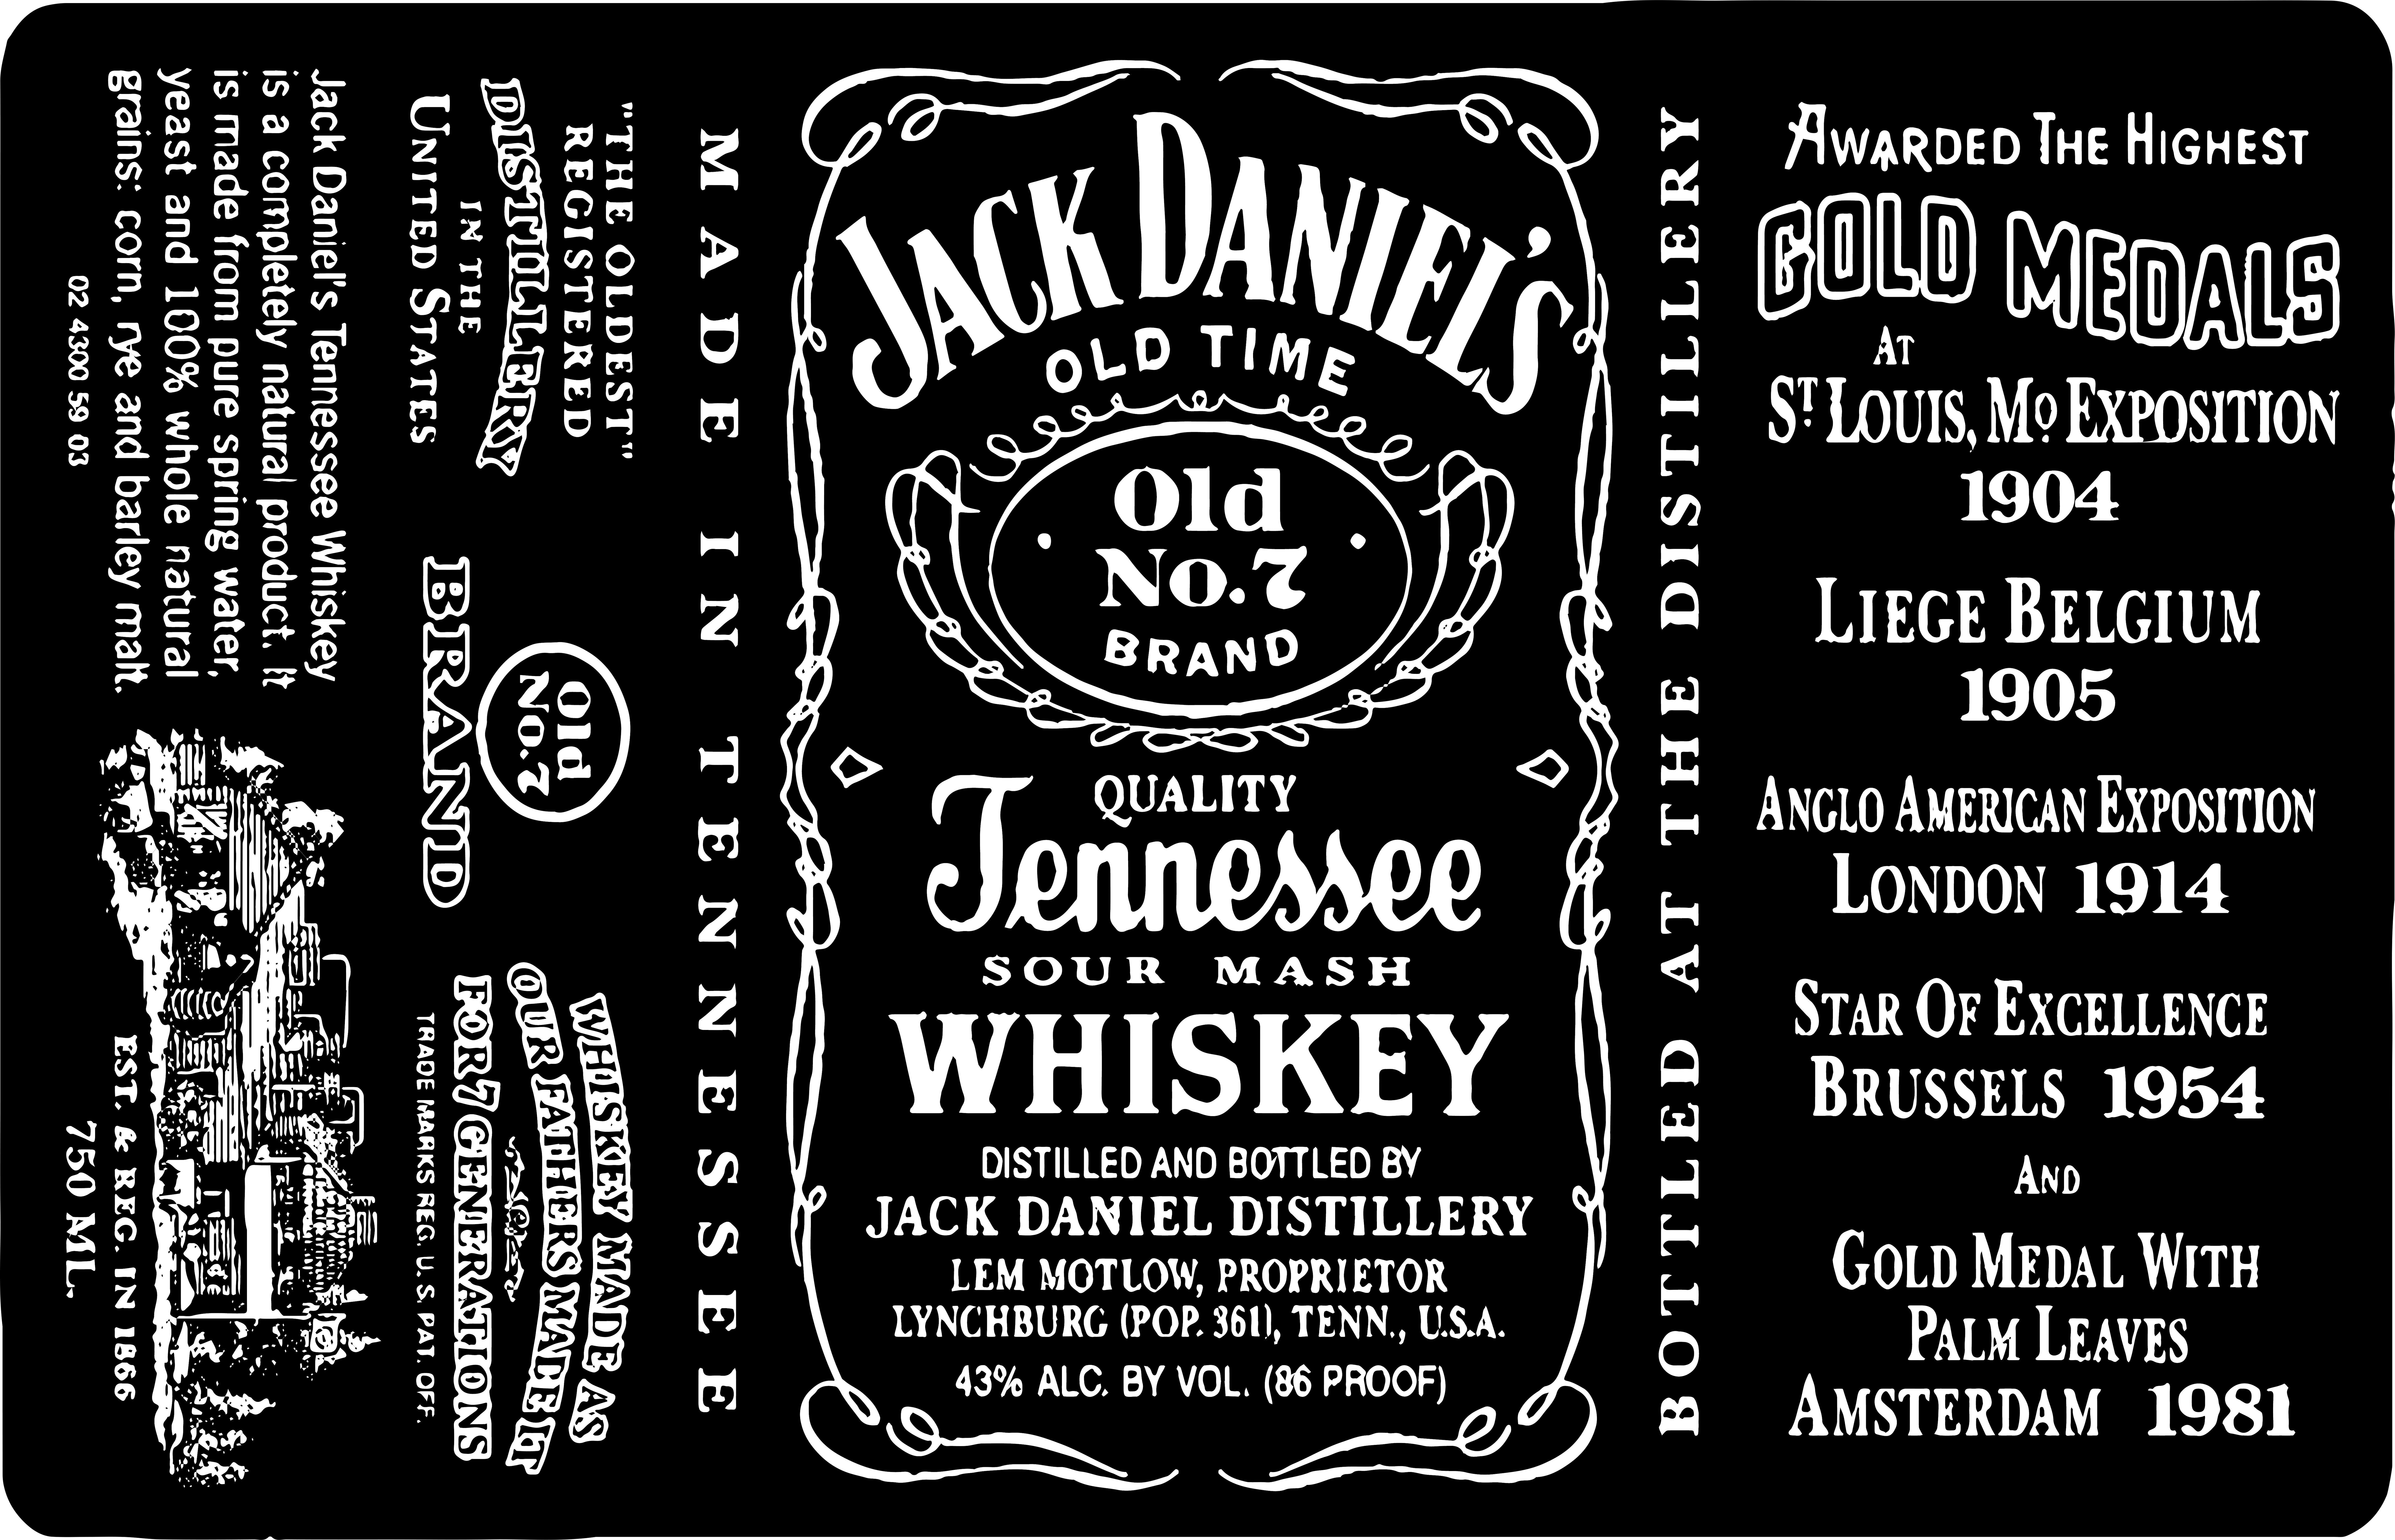 19 New Blank Jack Daniels Label intended for Blank Jack Daniels Label Template